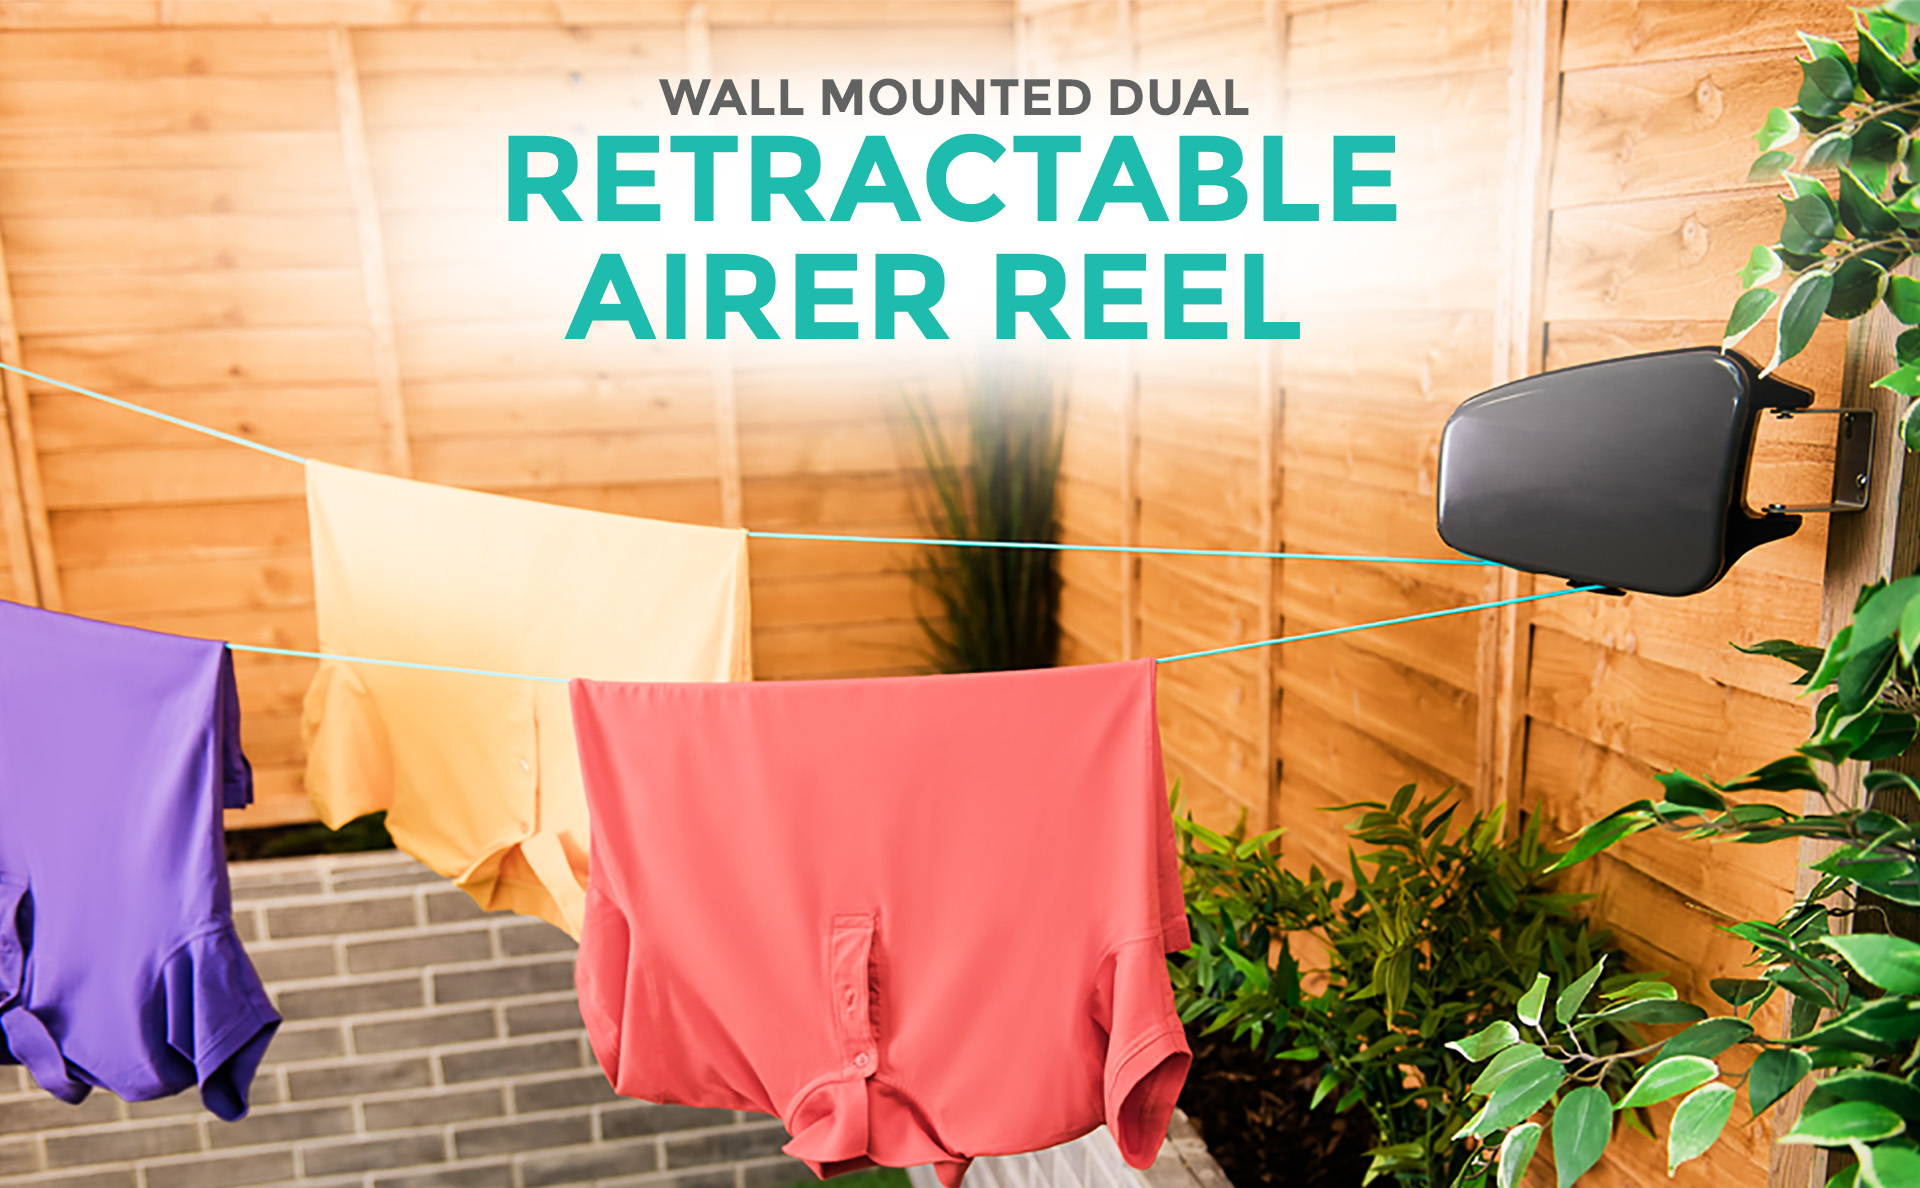 Wall-mounted Retractable Airer Reel